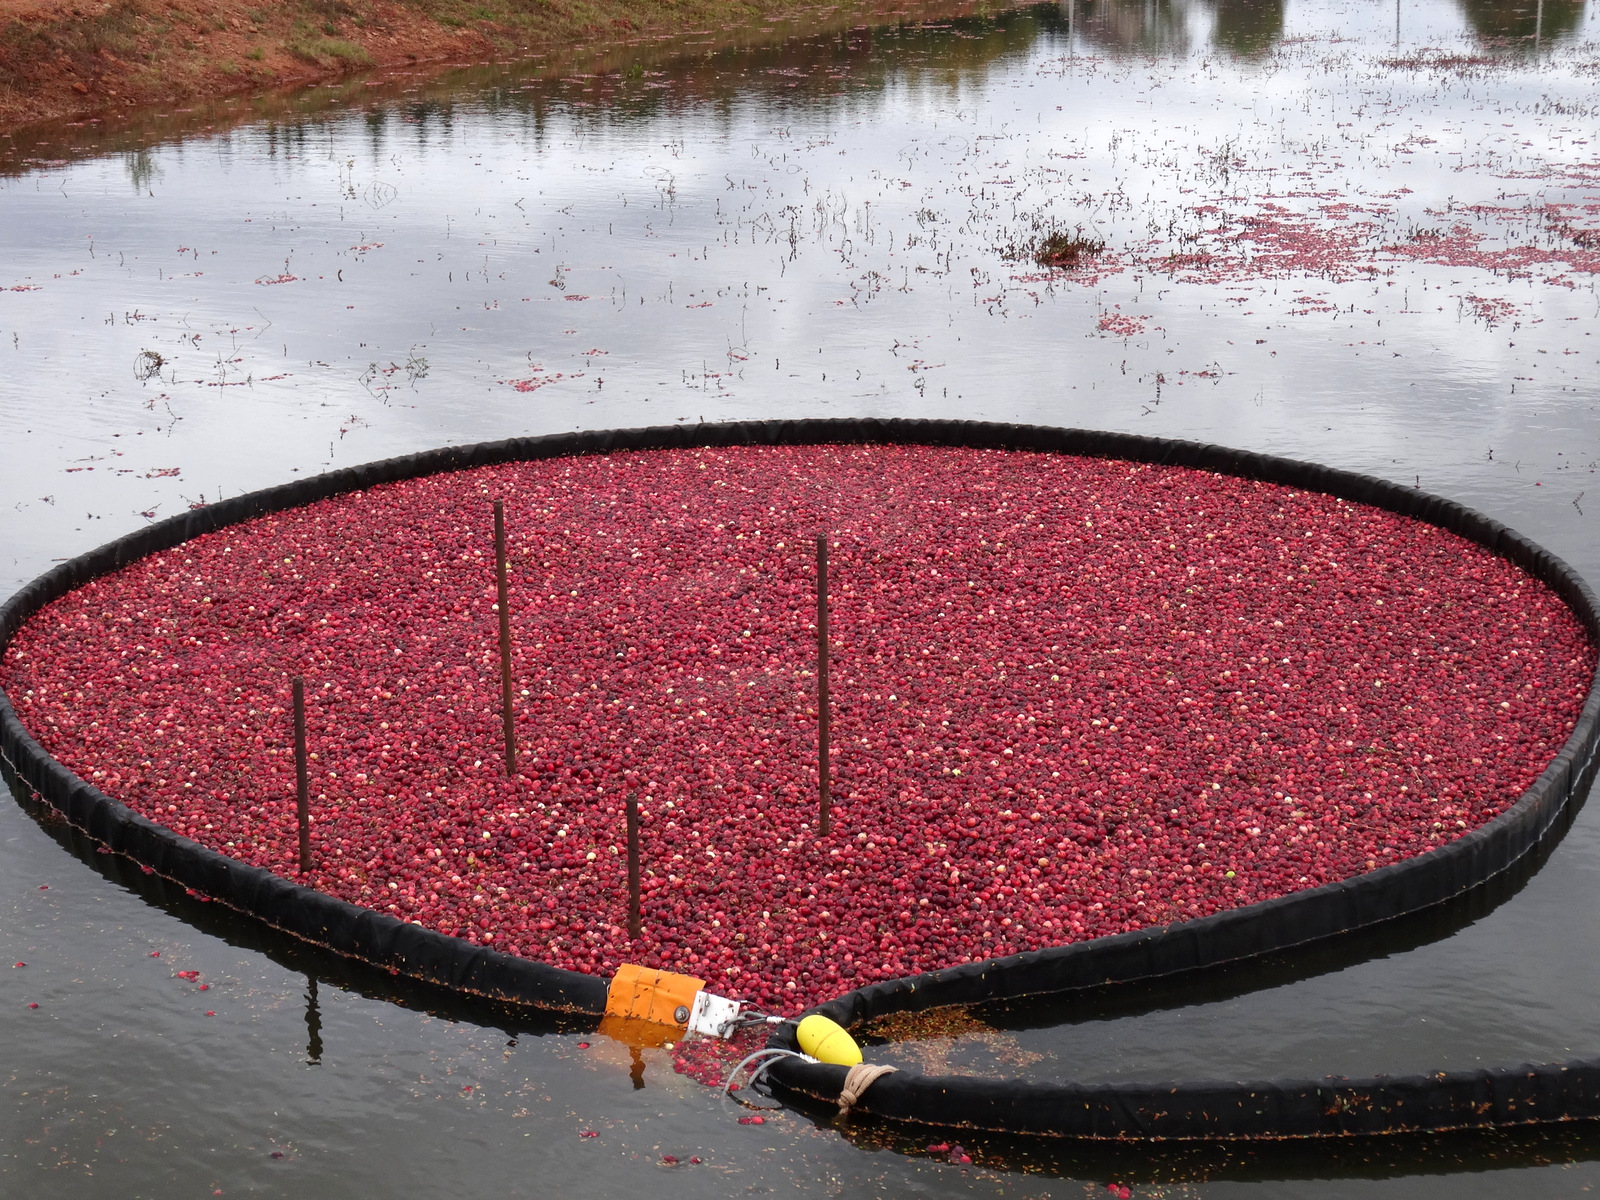 Corralled Cranberries